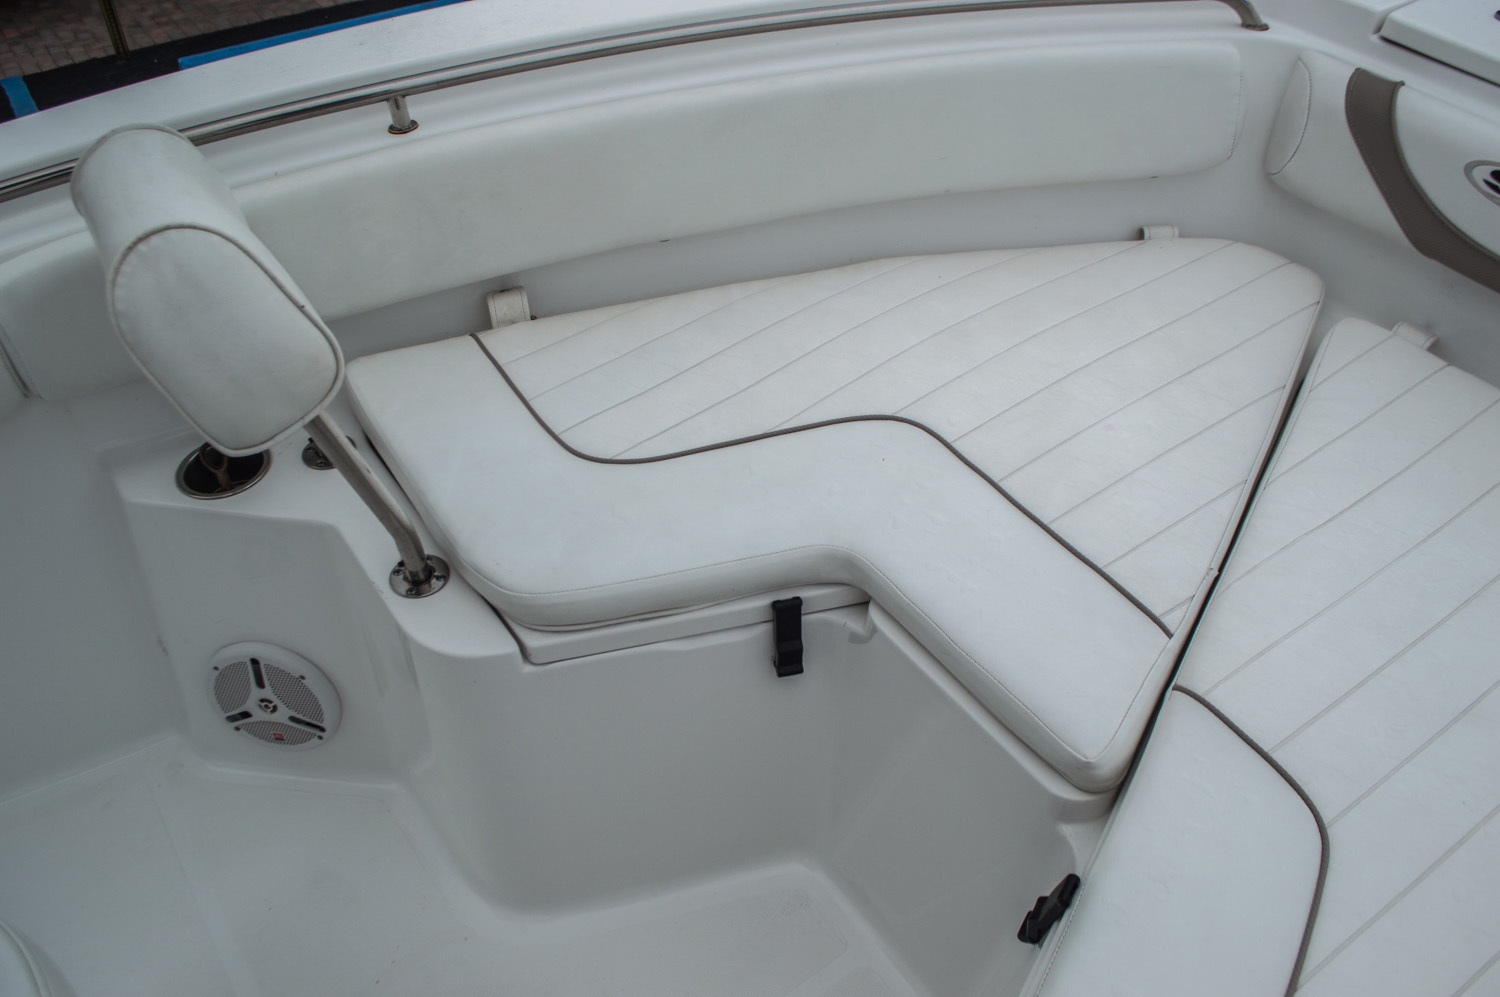 Thumbnail 11 for Used 2012 Sea Hunt 211 Ultra boat for sale in West Palm Beach, FL